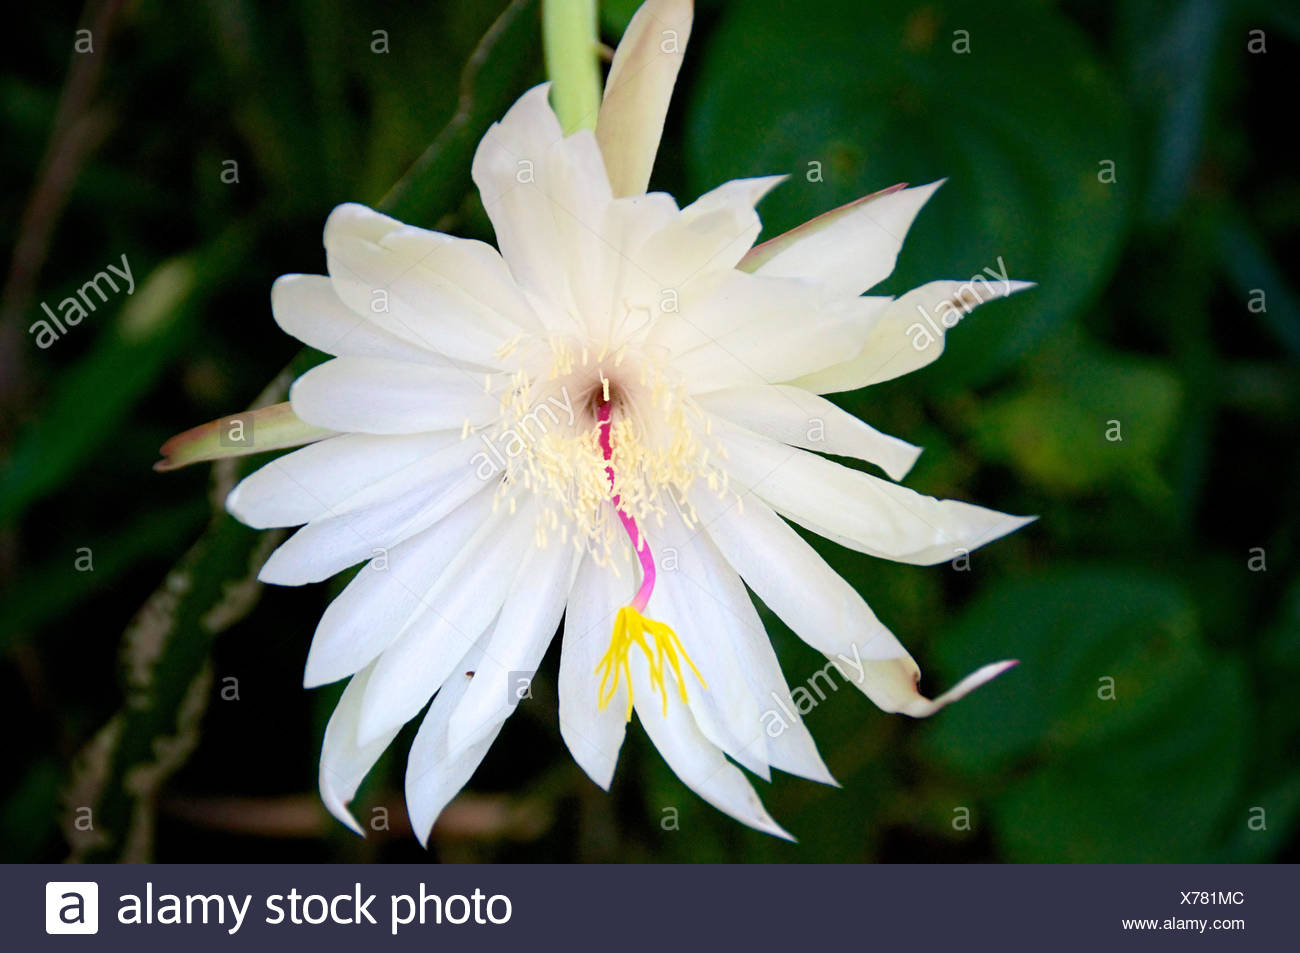 Old fashioned why night blooming flowers are white festooning fine why are night blooming flowers white crest wedding and mightylinksfo